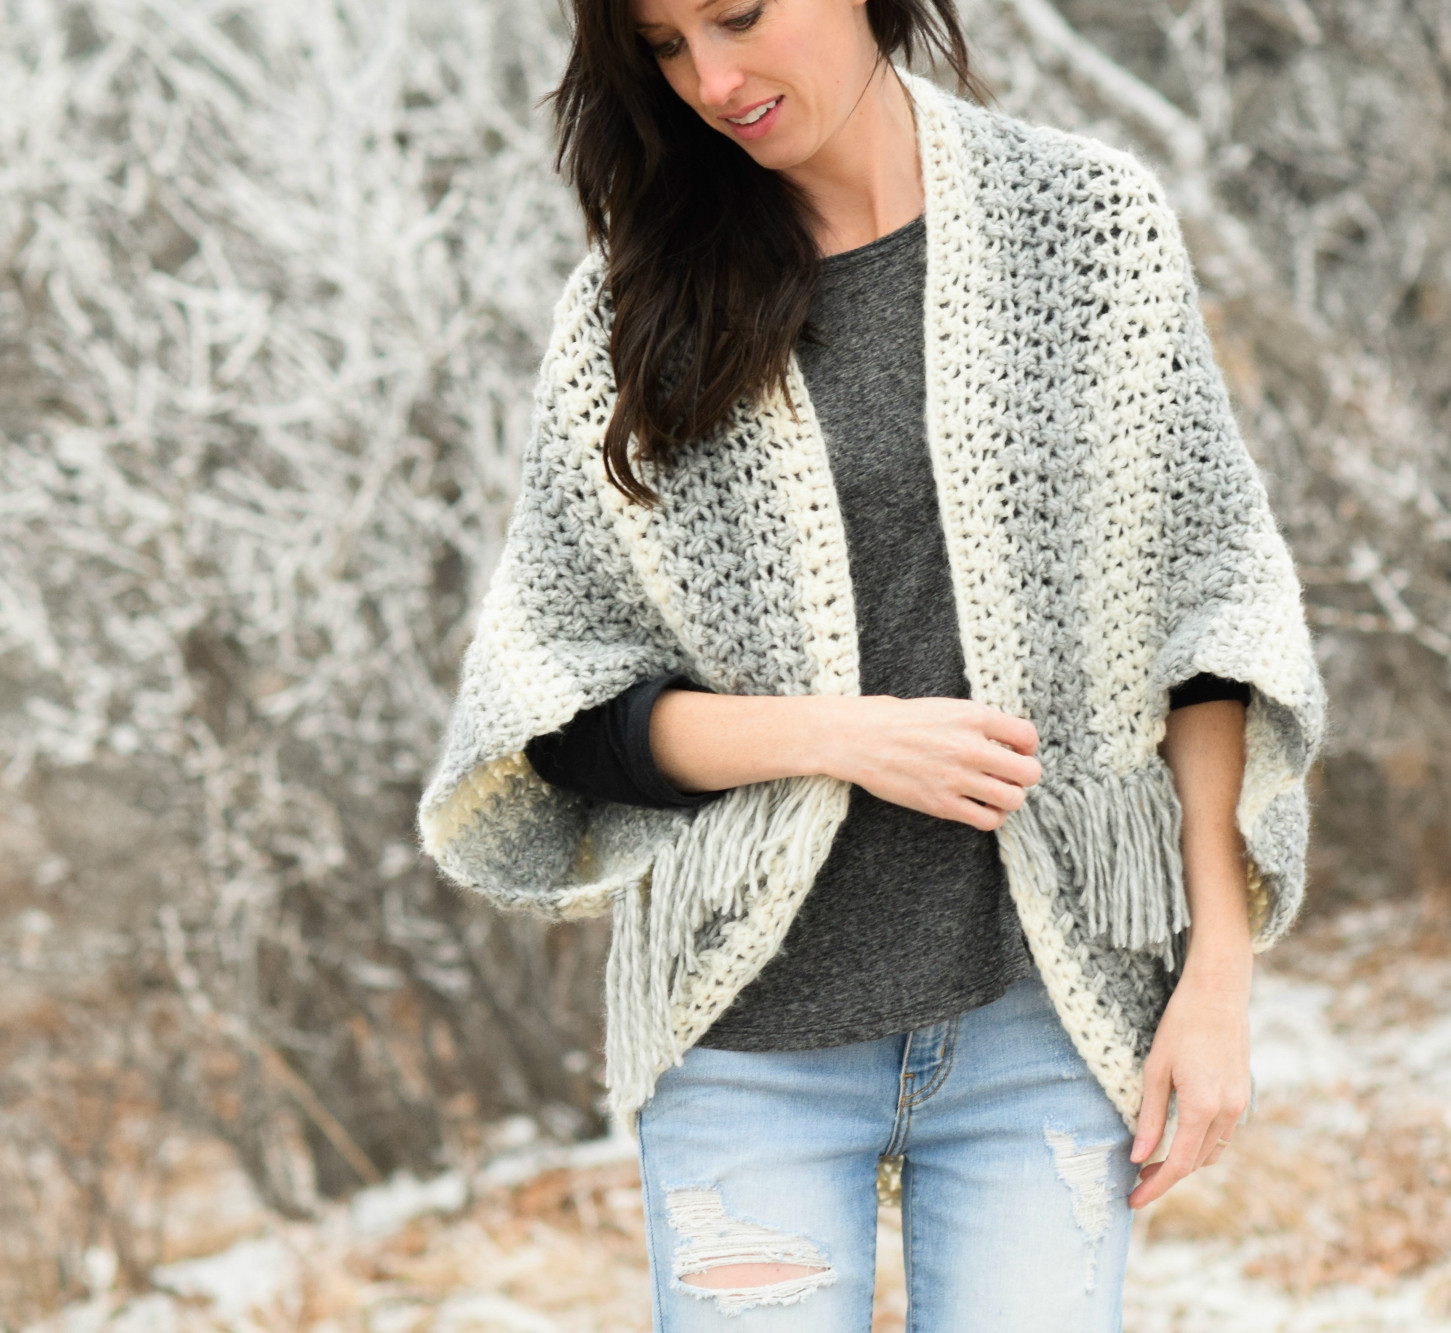 Crochet Cardigan Sweater Awesome Light Frost Easy Blanket Sweater Crochet Pattern – Mama In Of Luxury 41 Ideas Crochet Cardigan Sweater